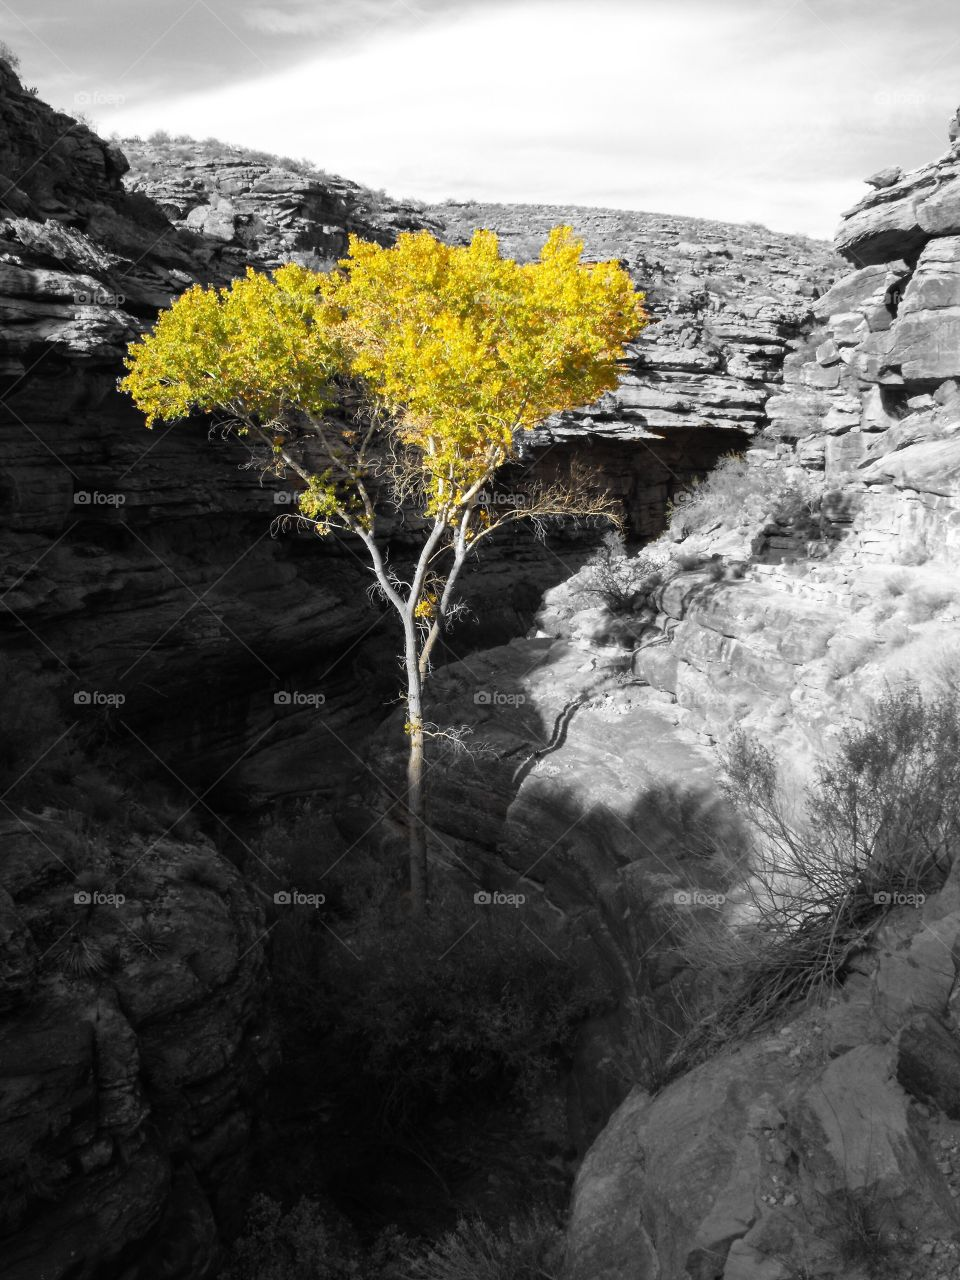 Color pop image revealing the brilliant golden autumn foliage of a tree rising up from the dark depths of the Grand Canyon in Arizona as seen along the Bright Angel Trail.